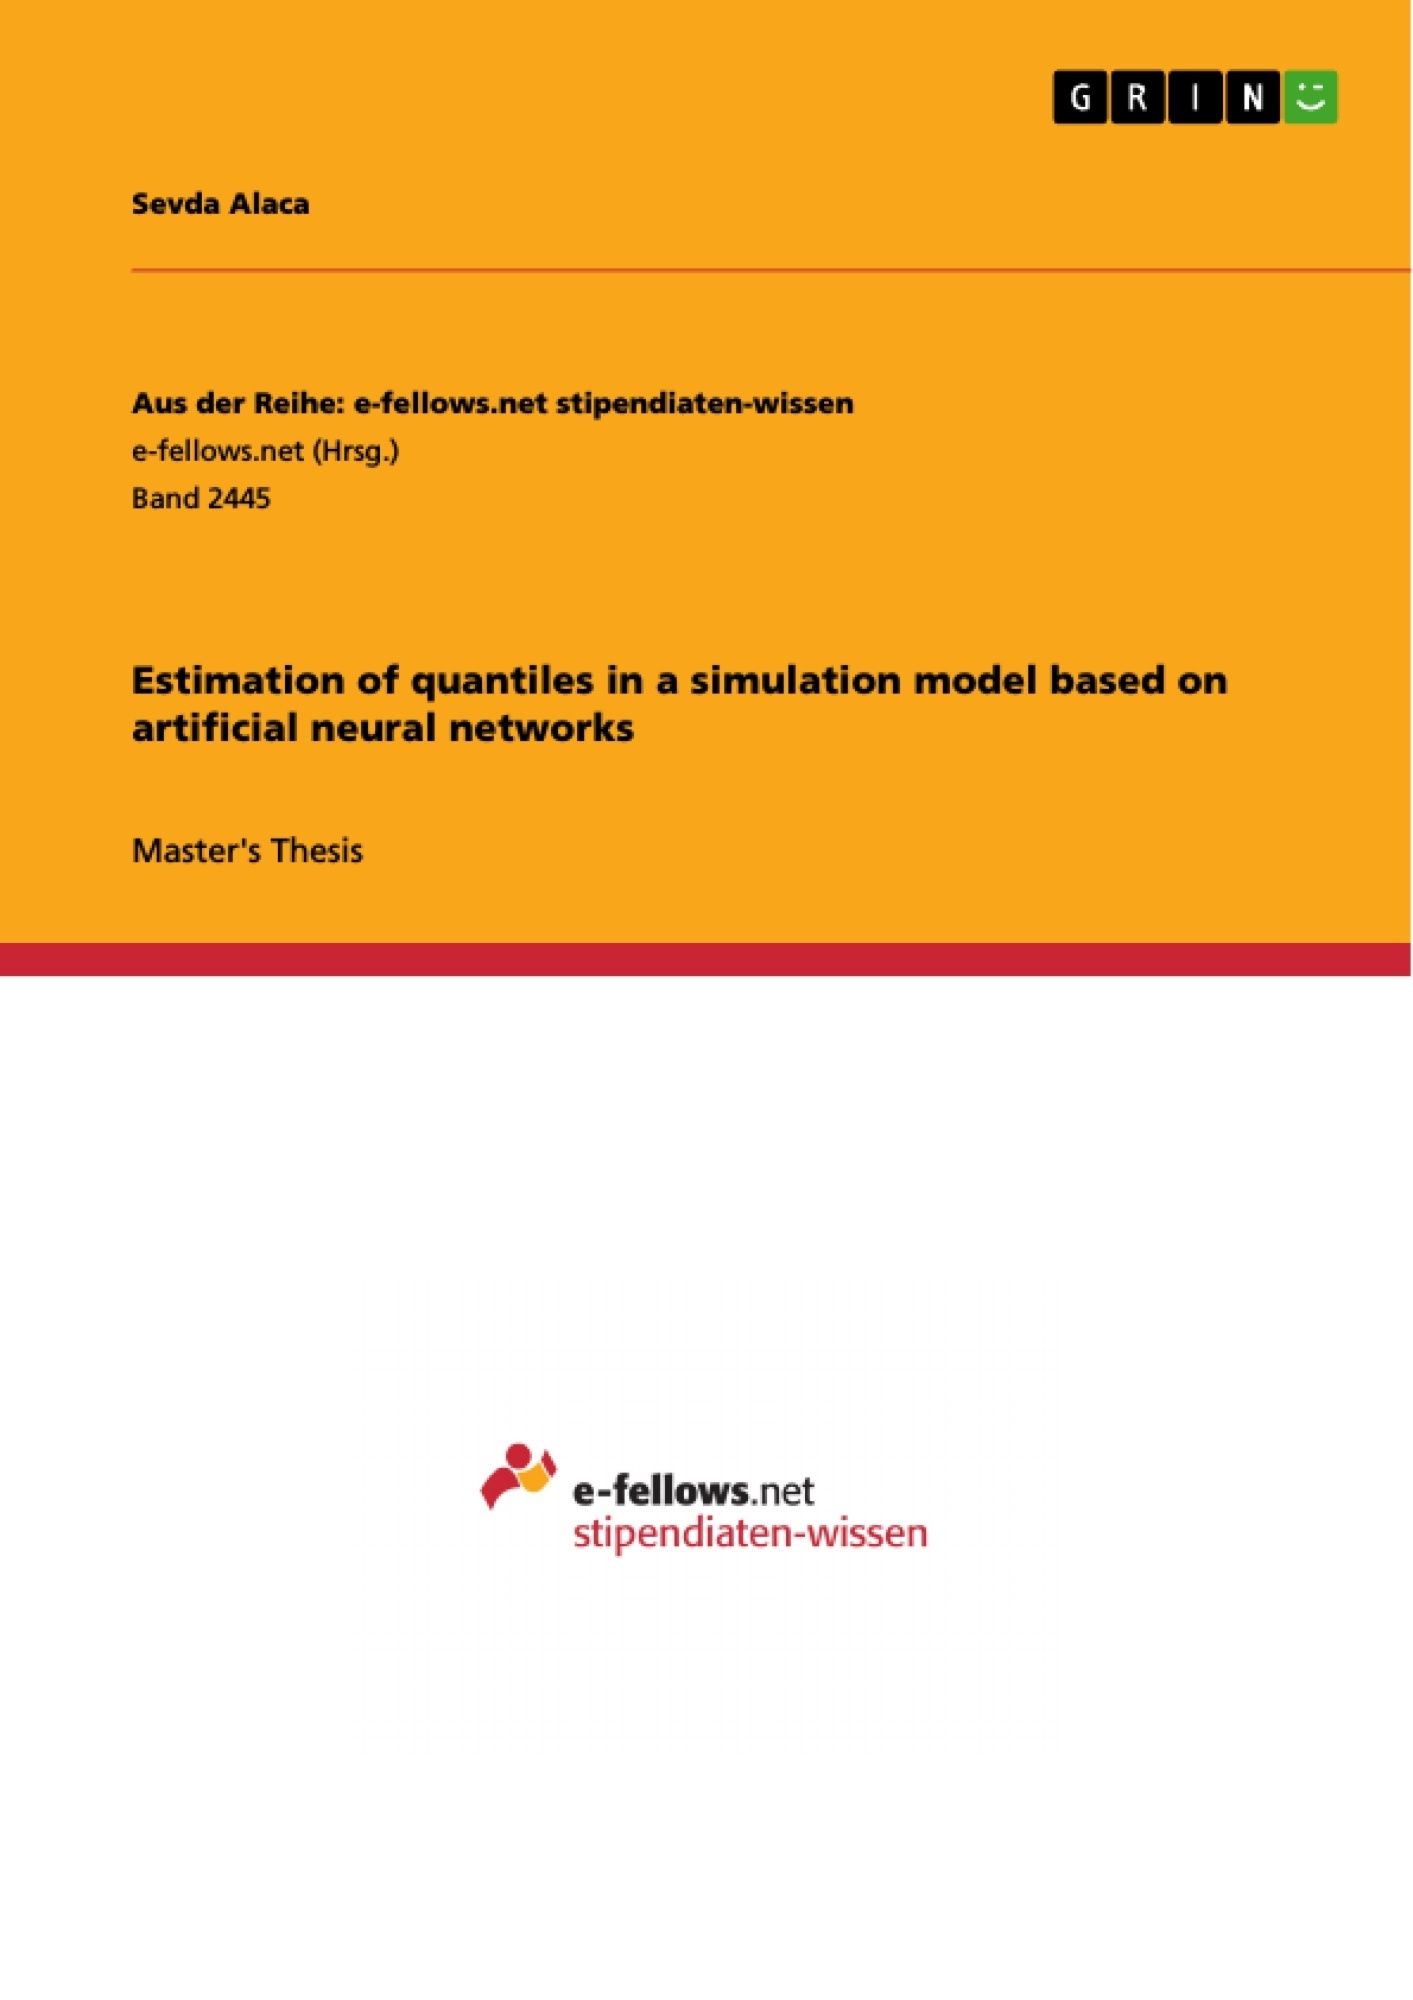 GRIN - Estimation of quantiles in a simulation model based on artificial  neural networks